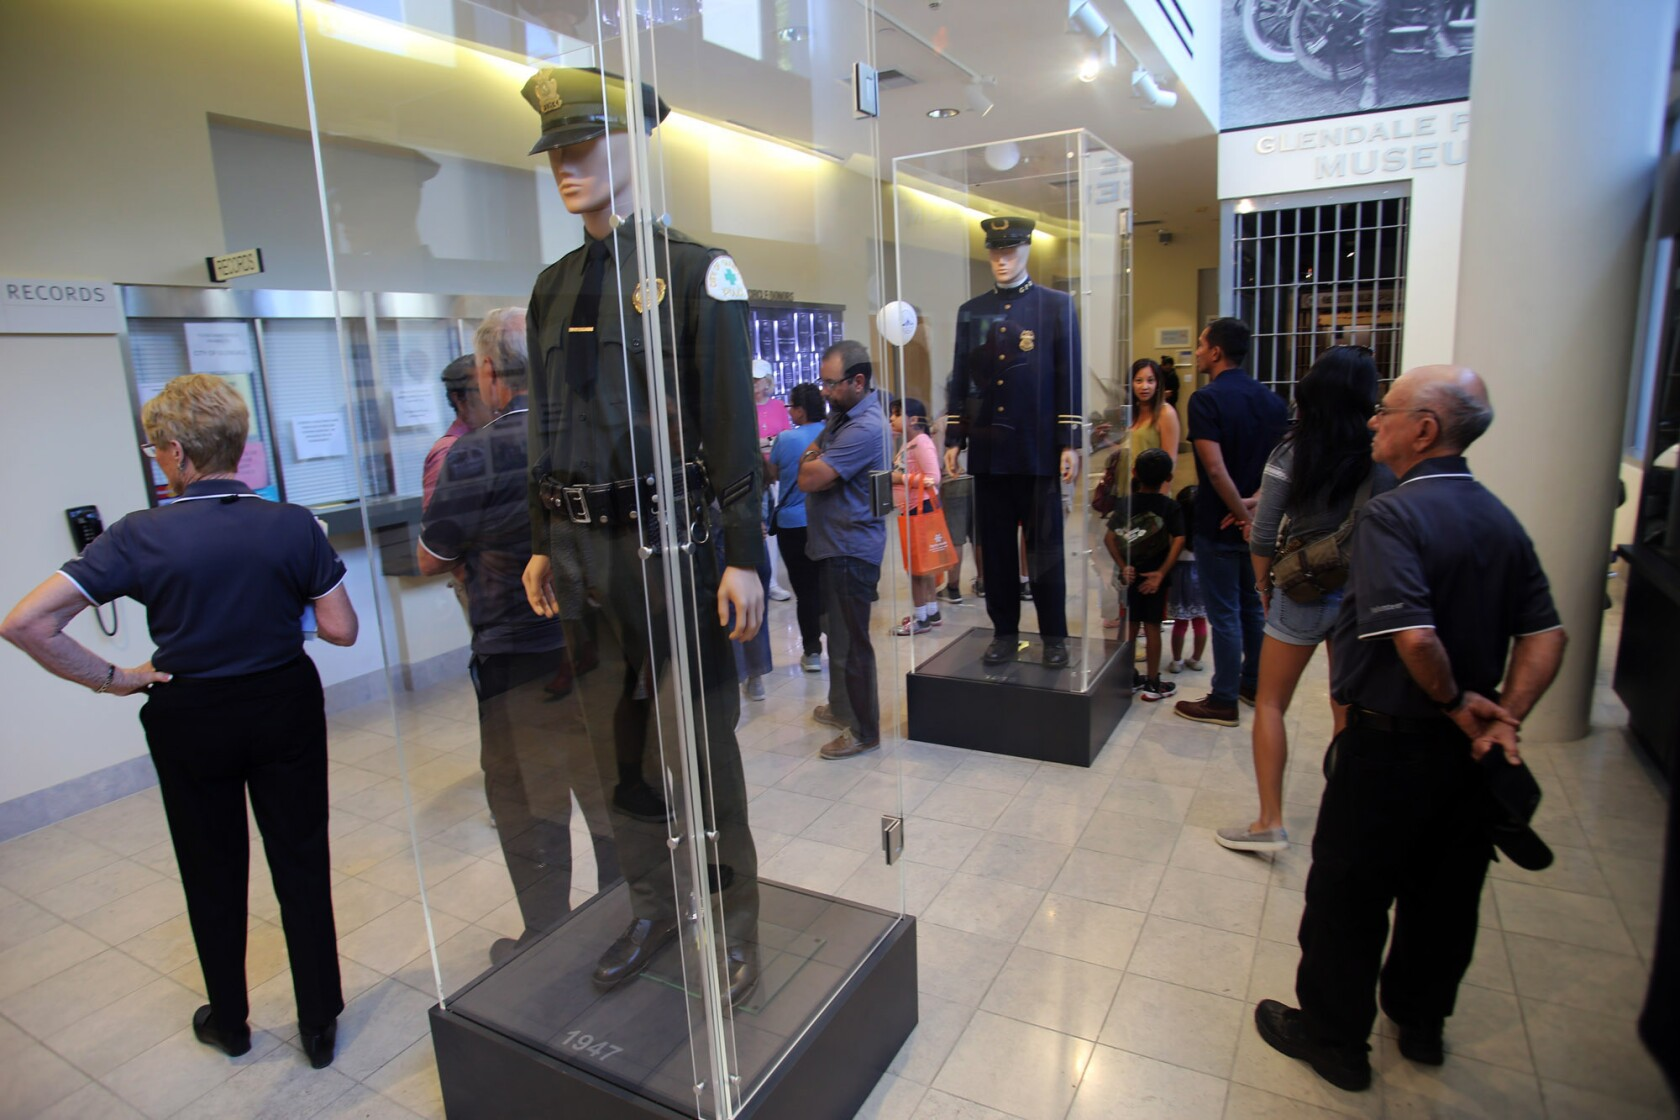 Glendale police opens its doors to the community